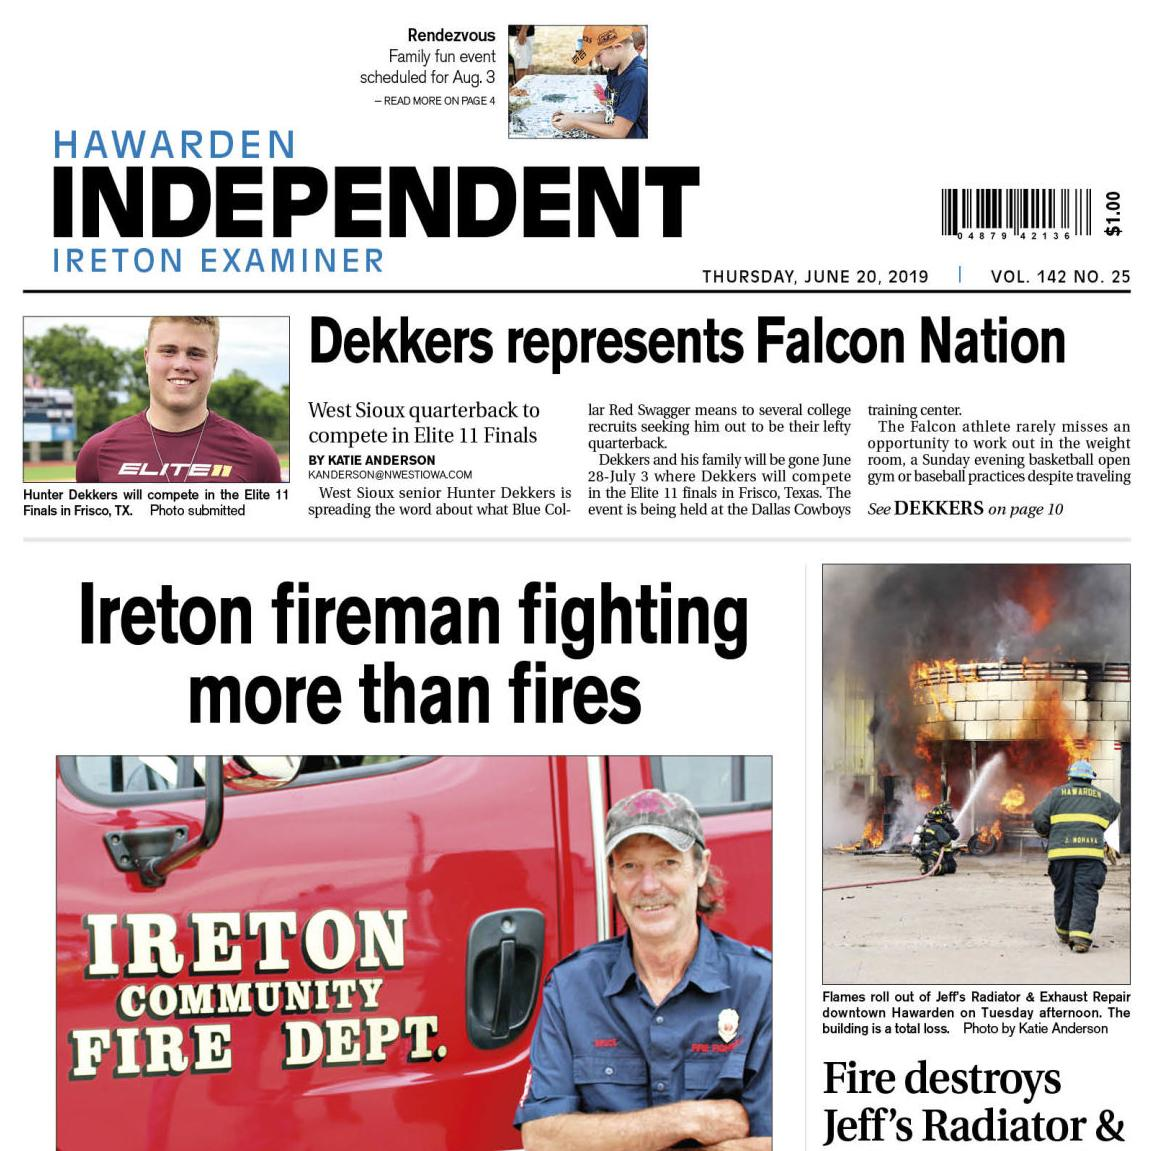 Hawarden Independent/Ireton Examiner June 20, 2019